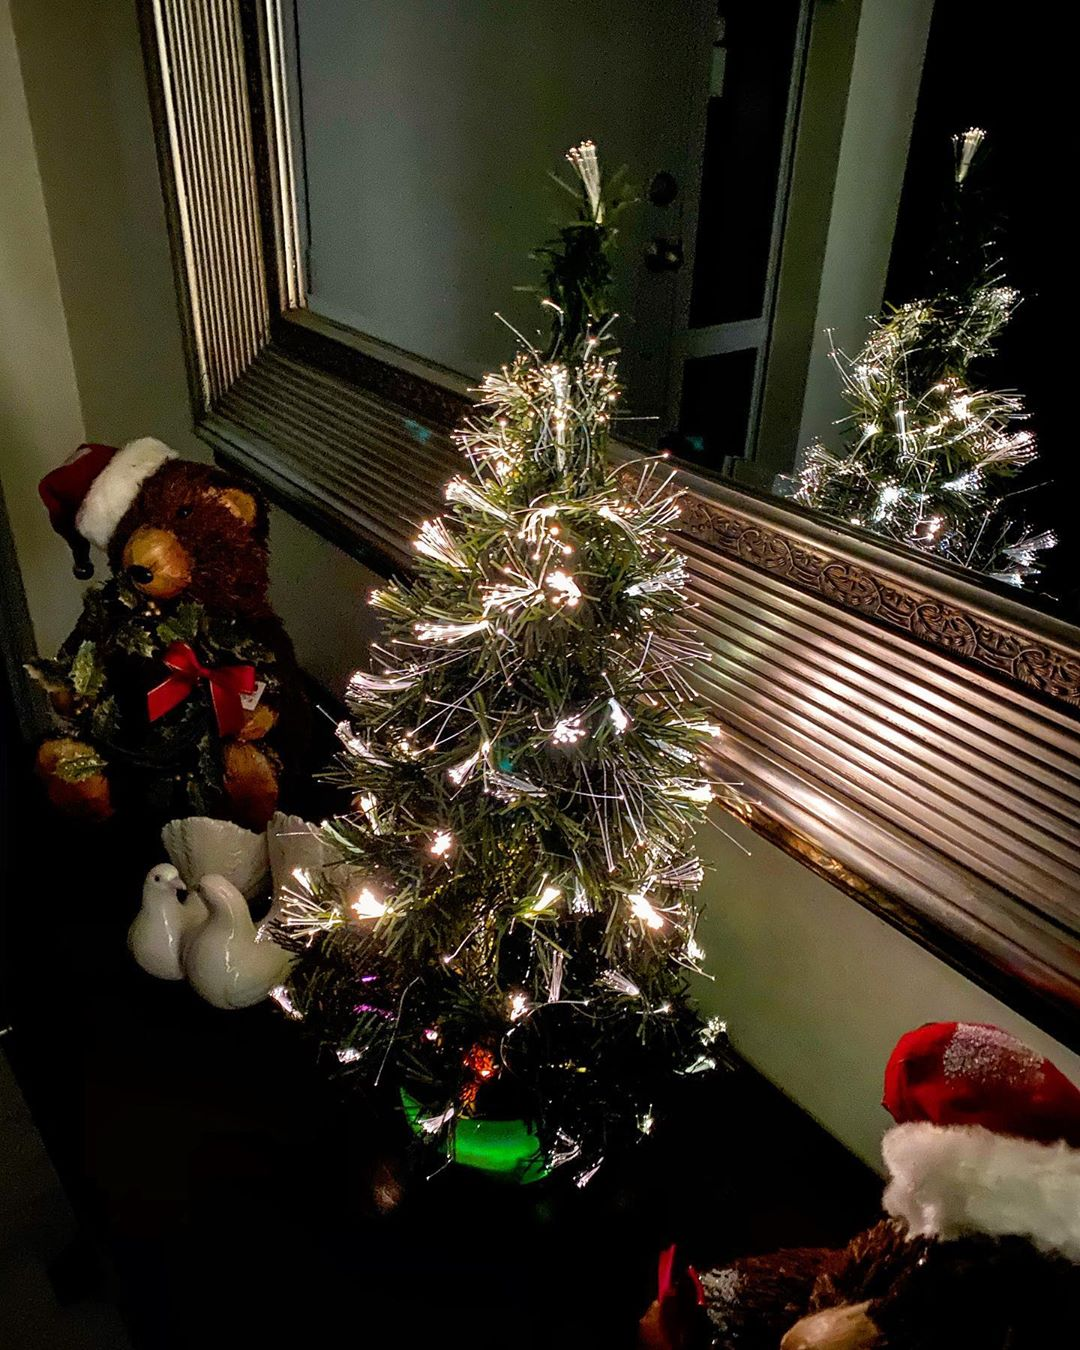 Small Christmas tree illuminated by fibre optic strands with two small teddy bears wearing Santa hats either side of it